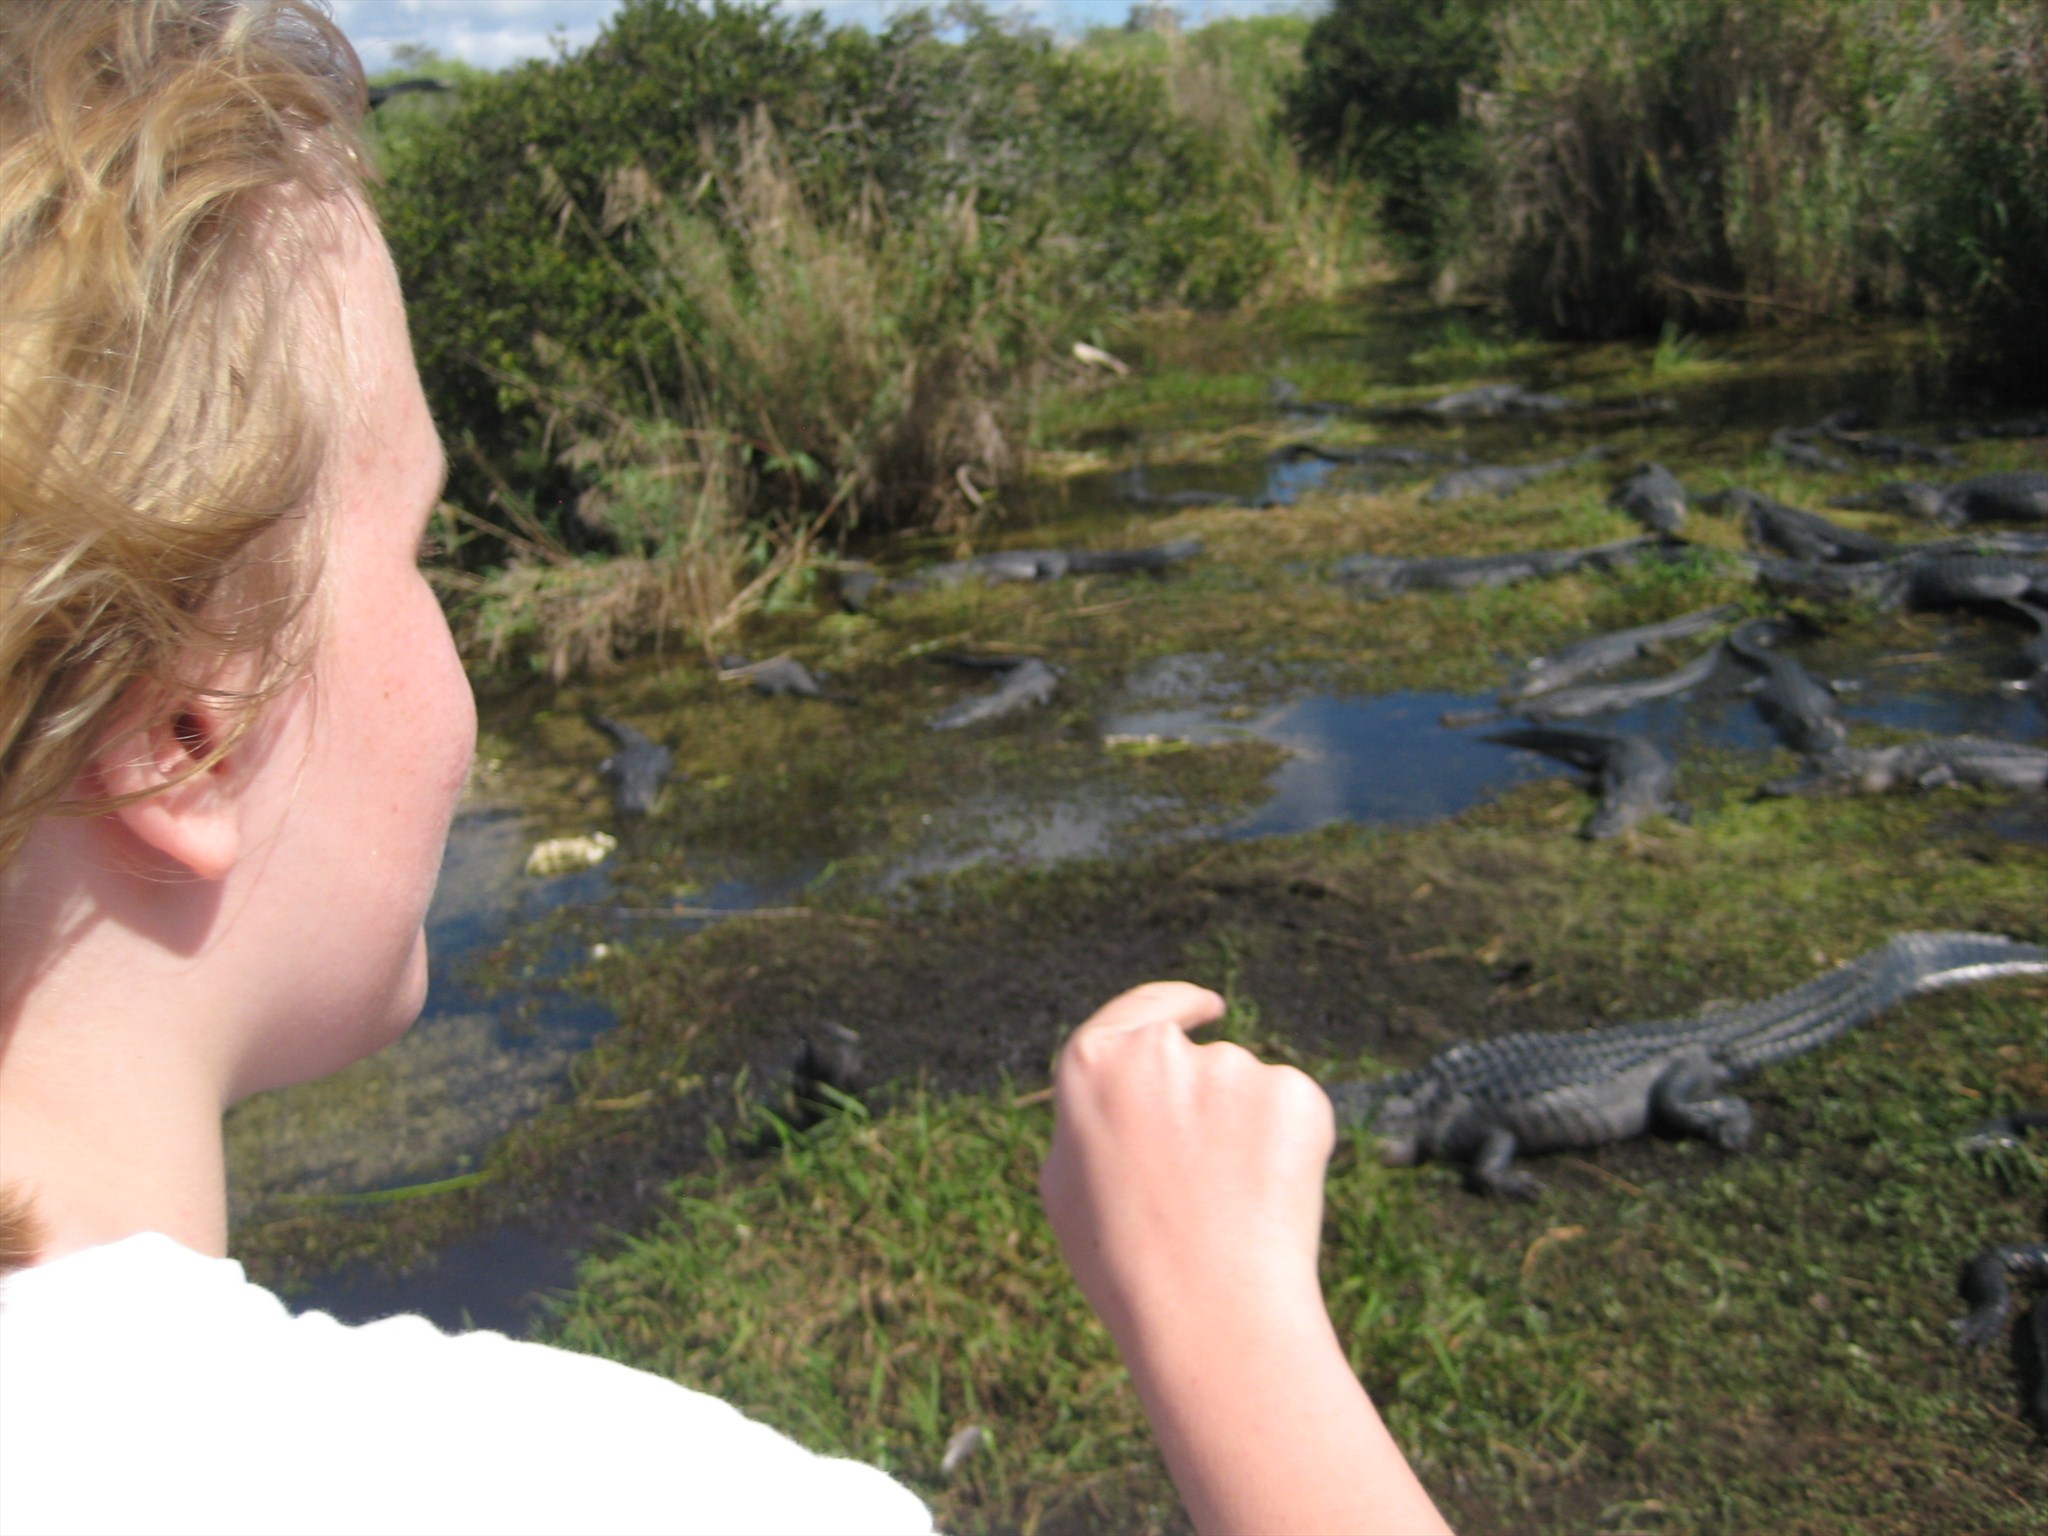 Counting some of the Everglades' natural residents. Photo by geocacher lilyfly.